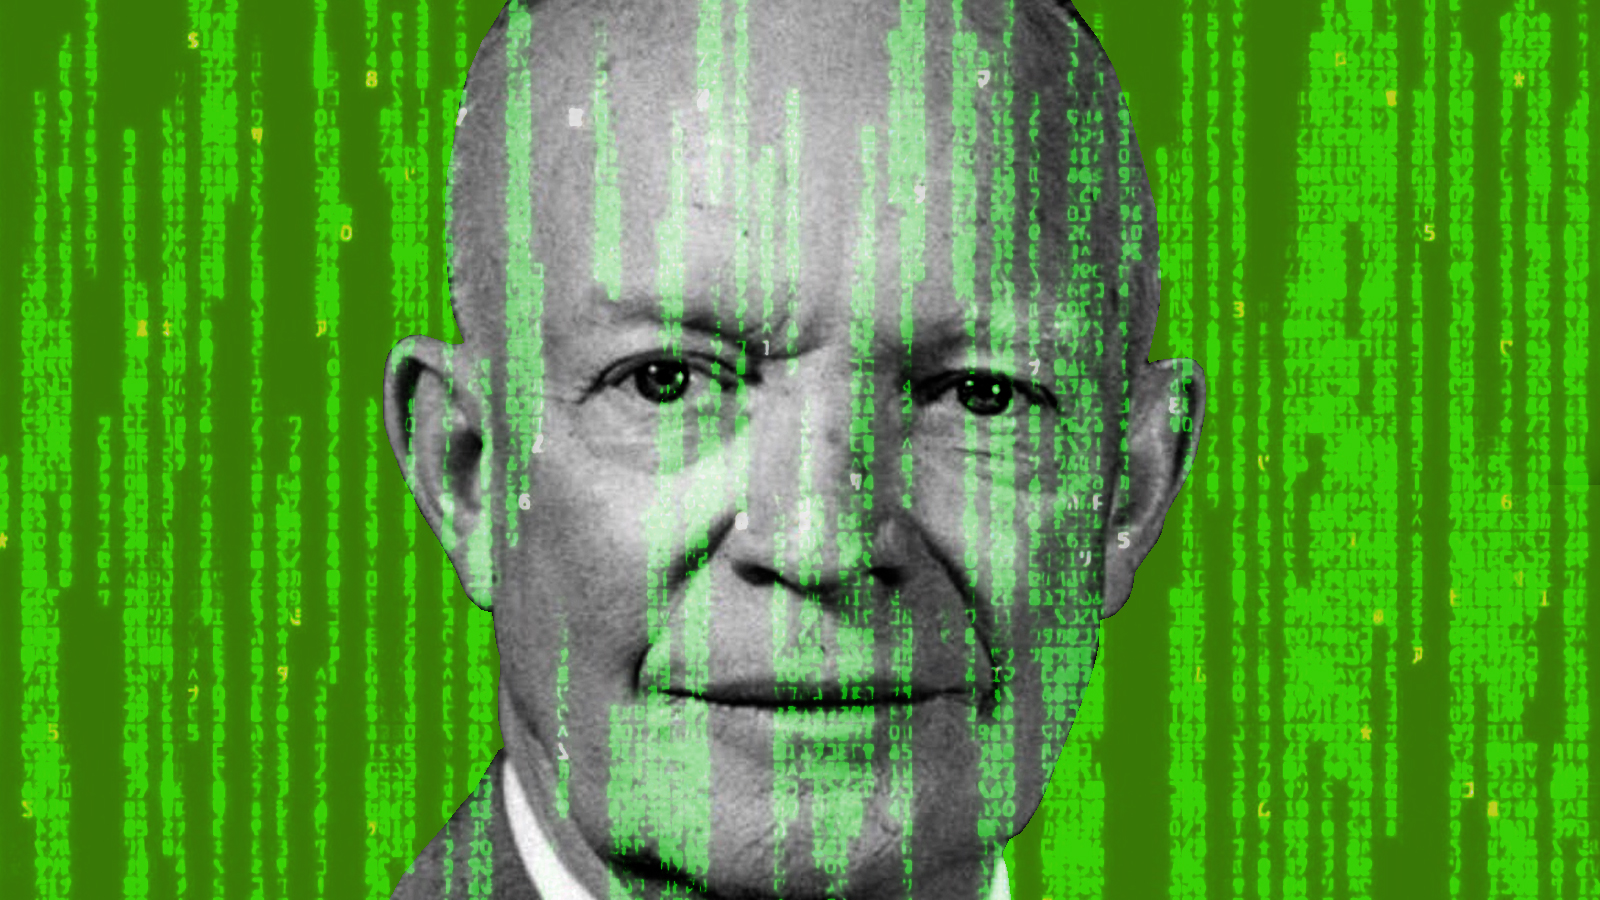 The Eisenhower matrix: How to decide on what's important and urgent (without a to-do list)